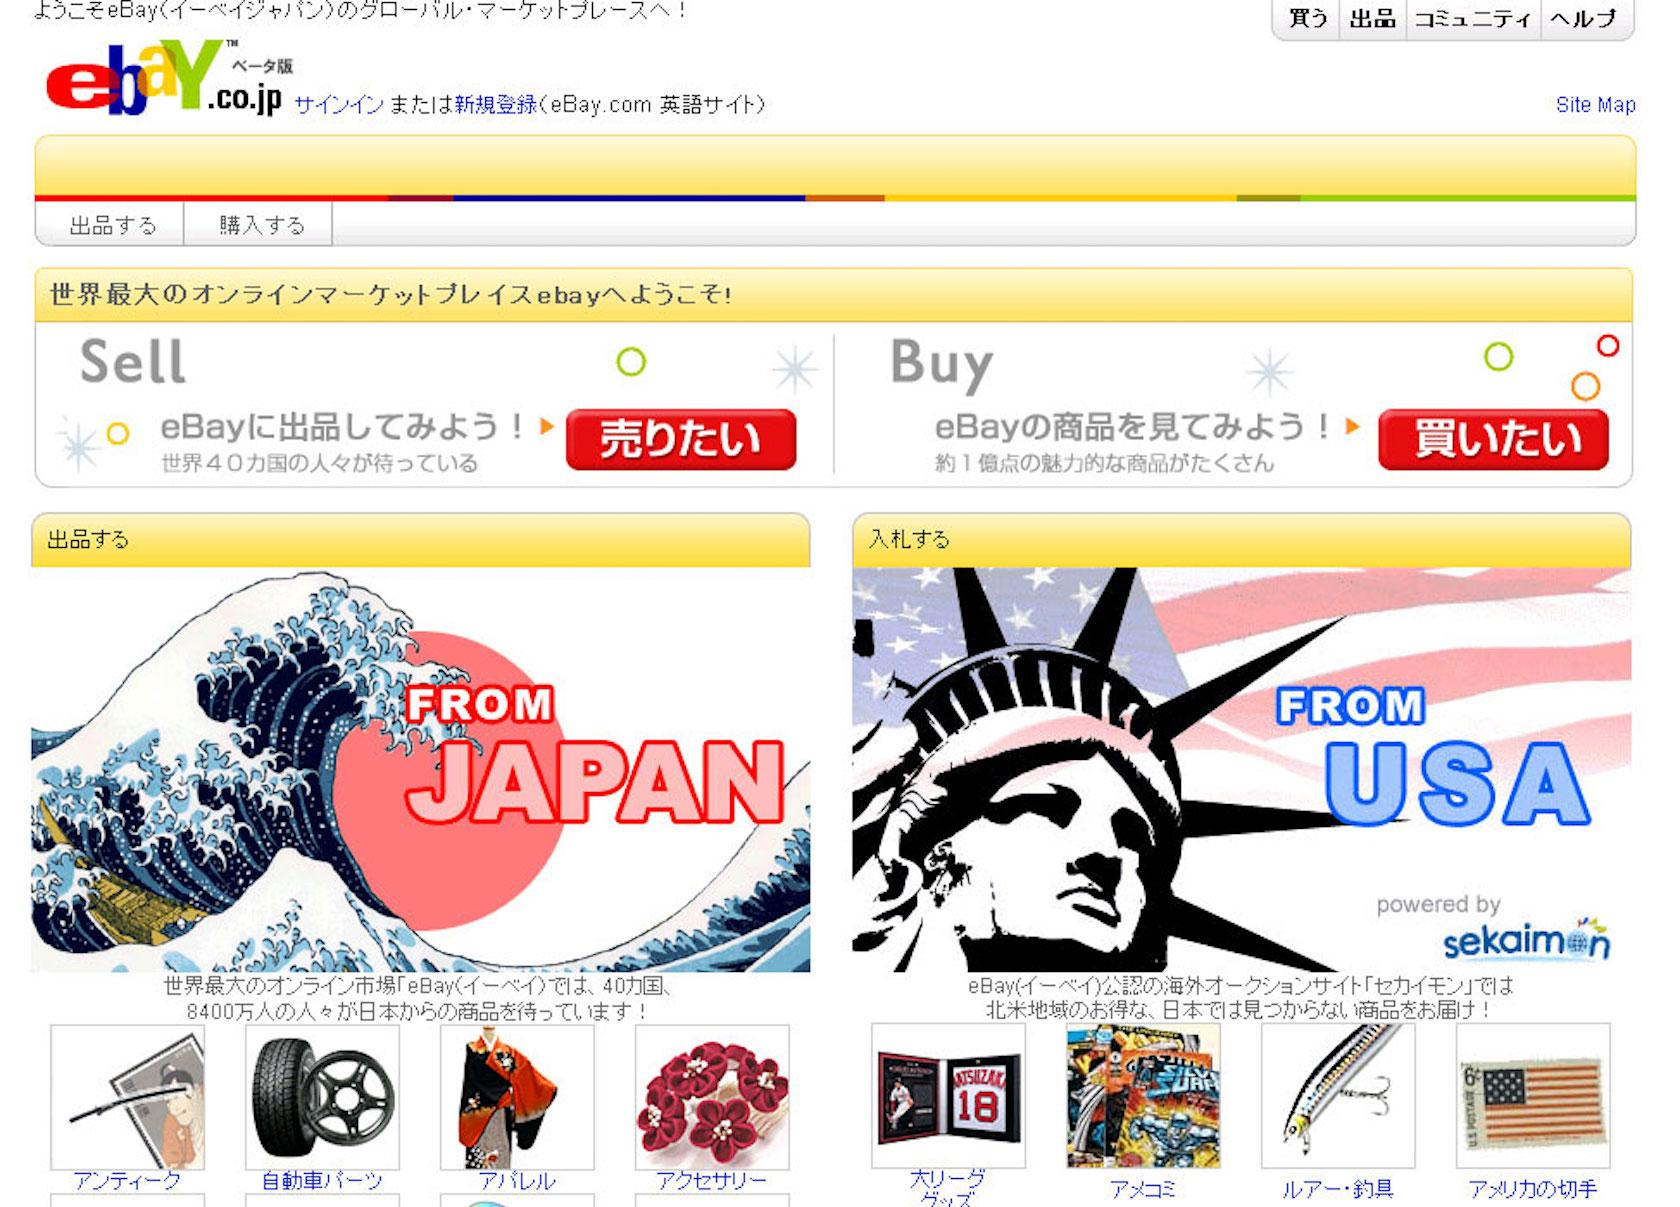 eBay Japan: poor cross-cultural user interface design